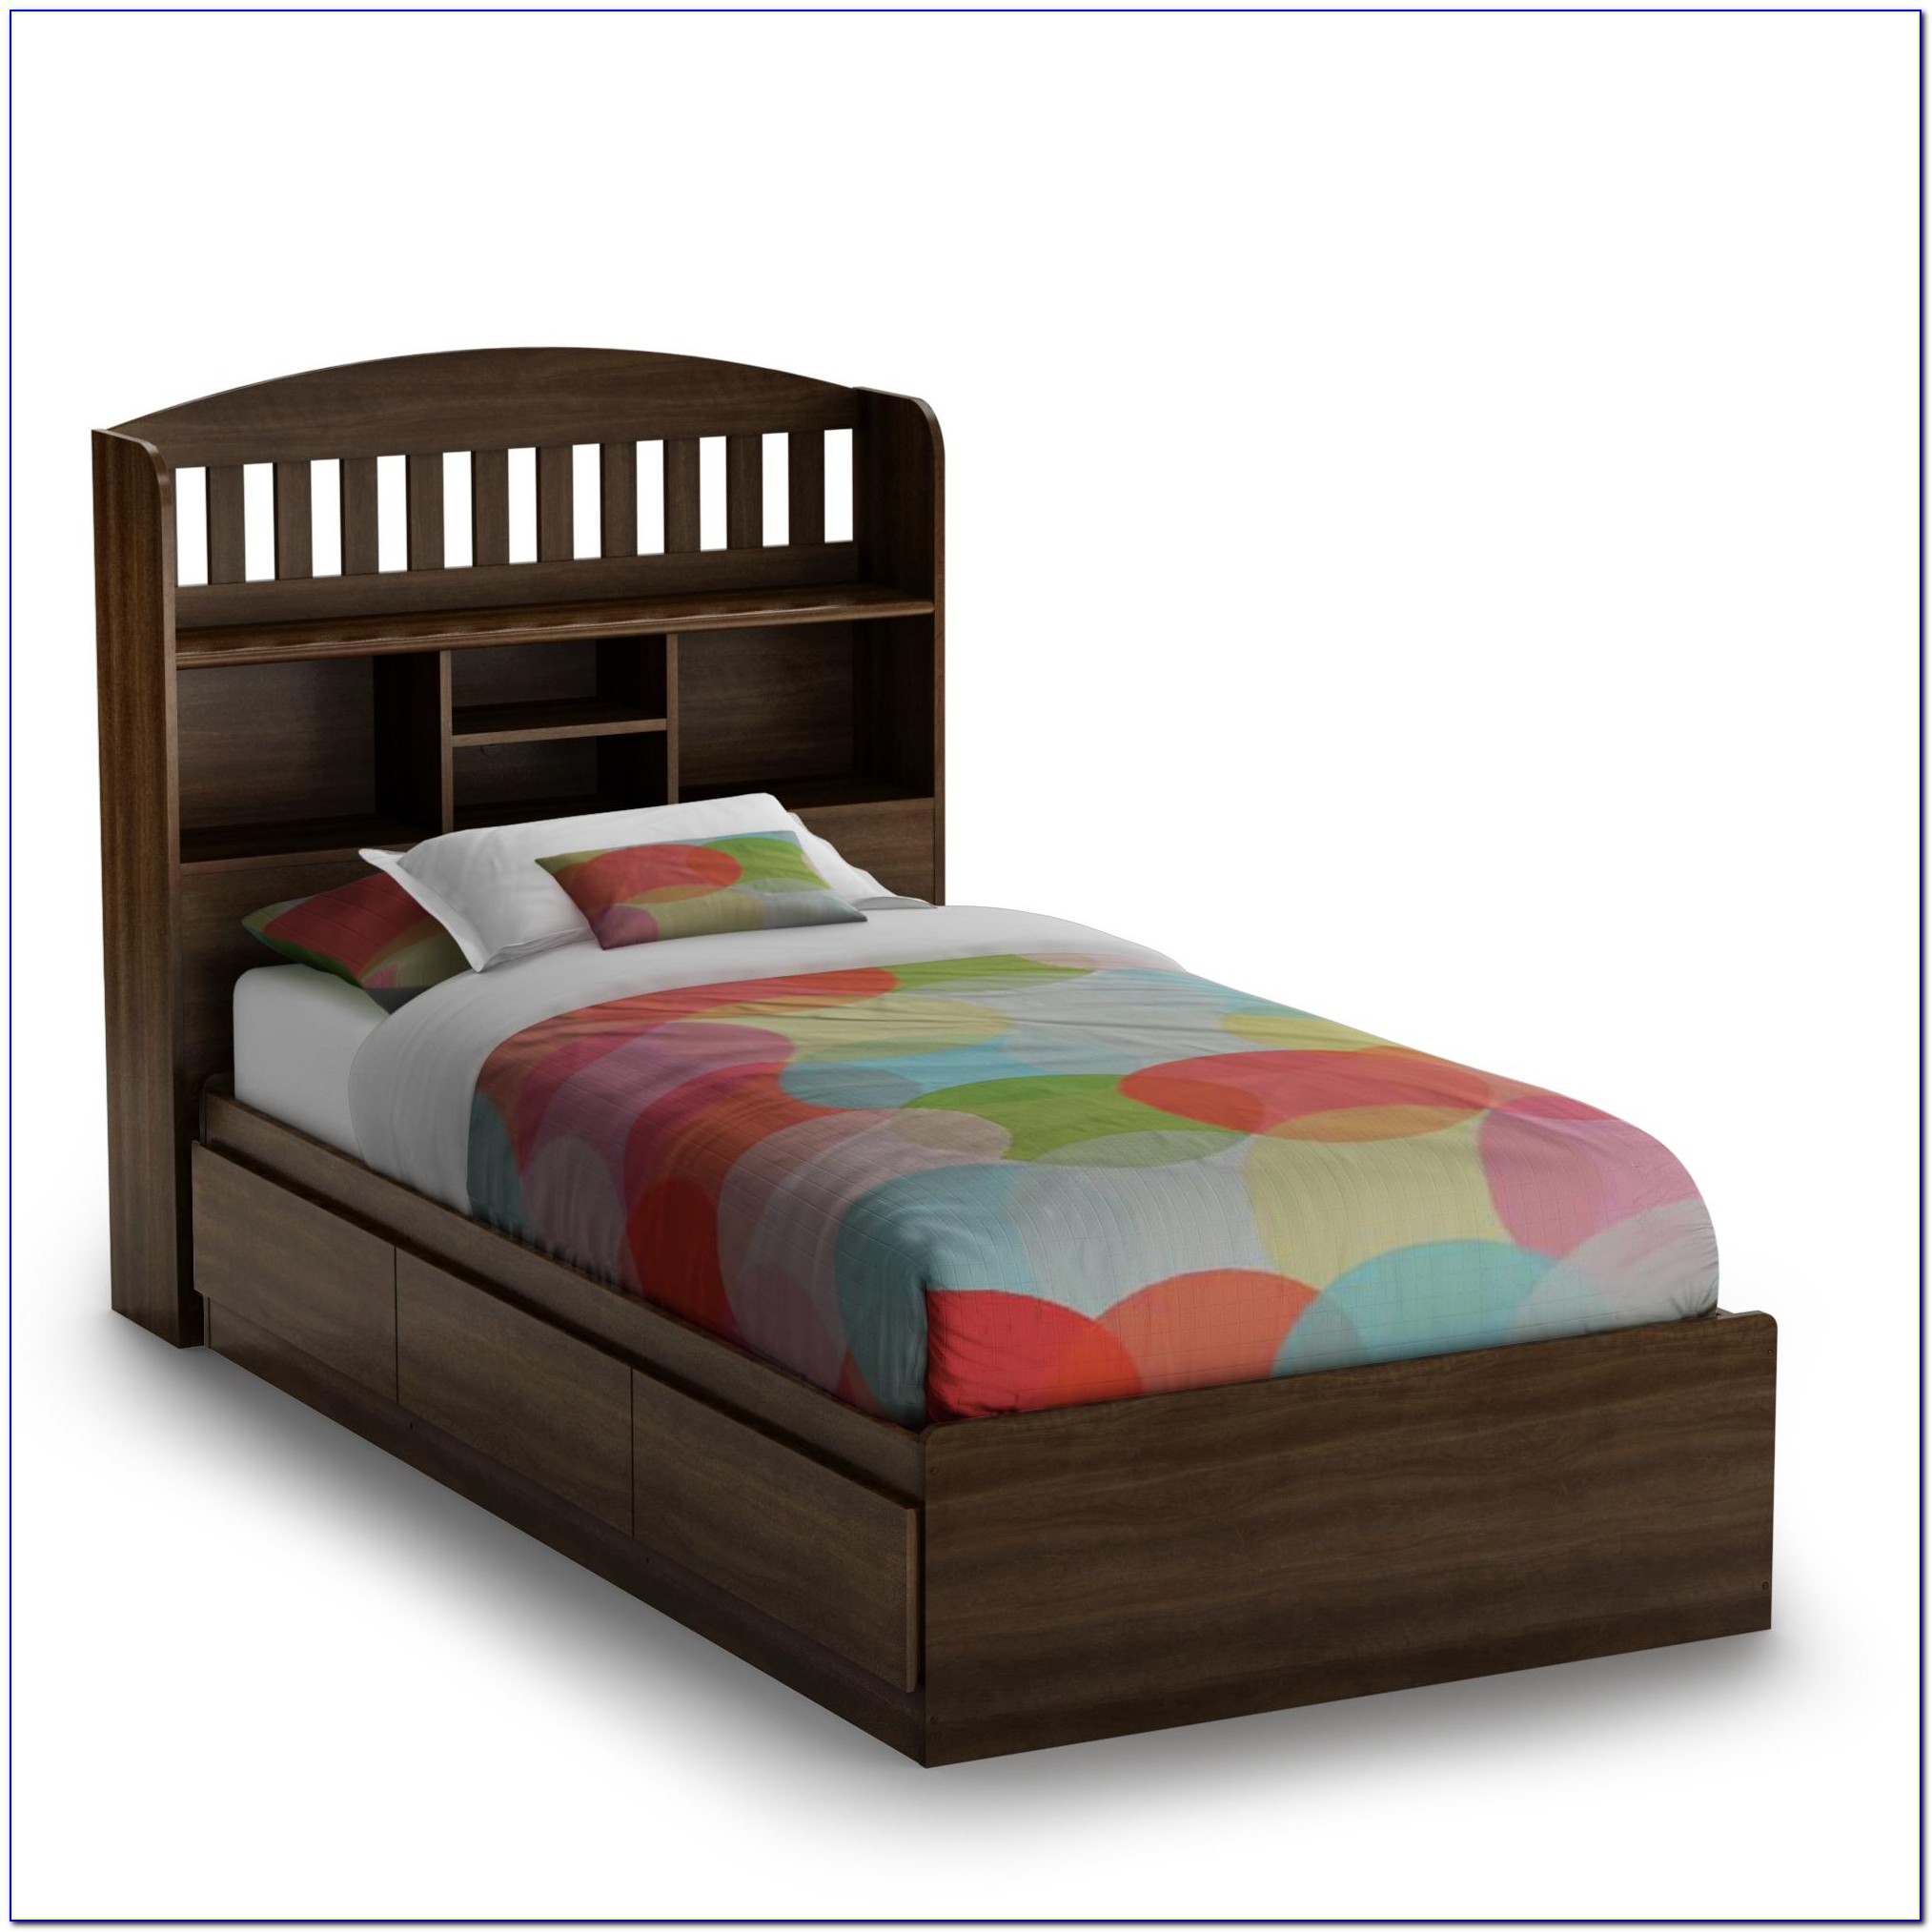 Bed With Shelves In Headboard